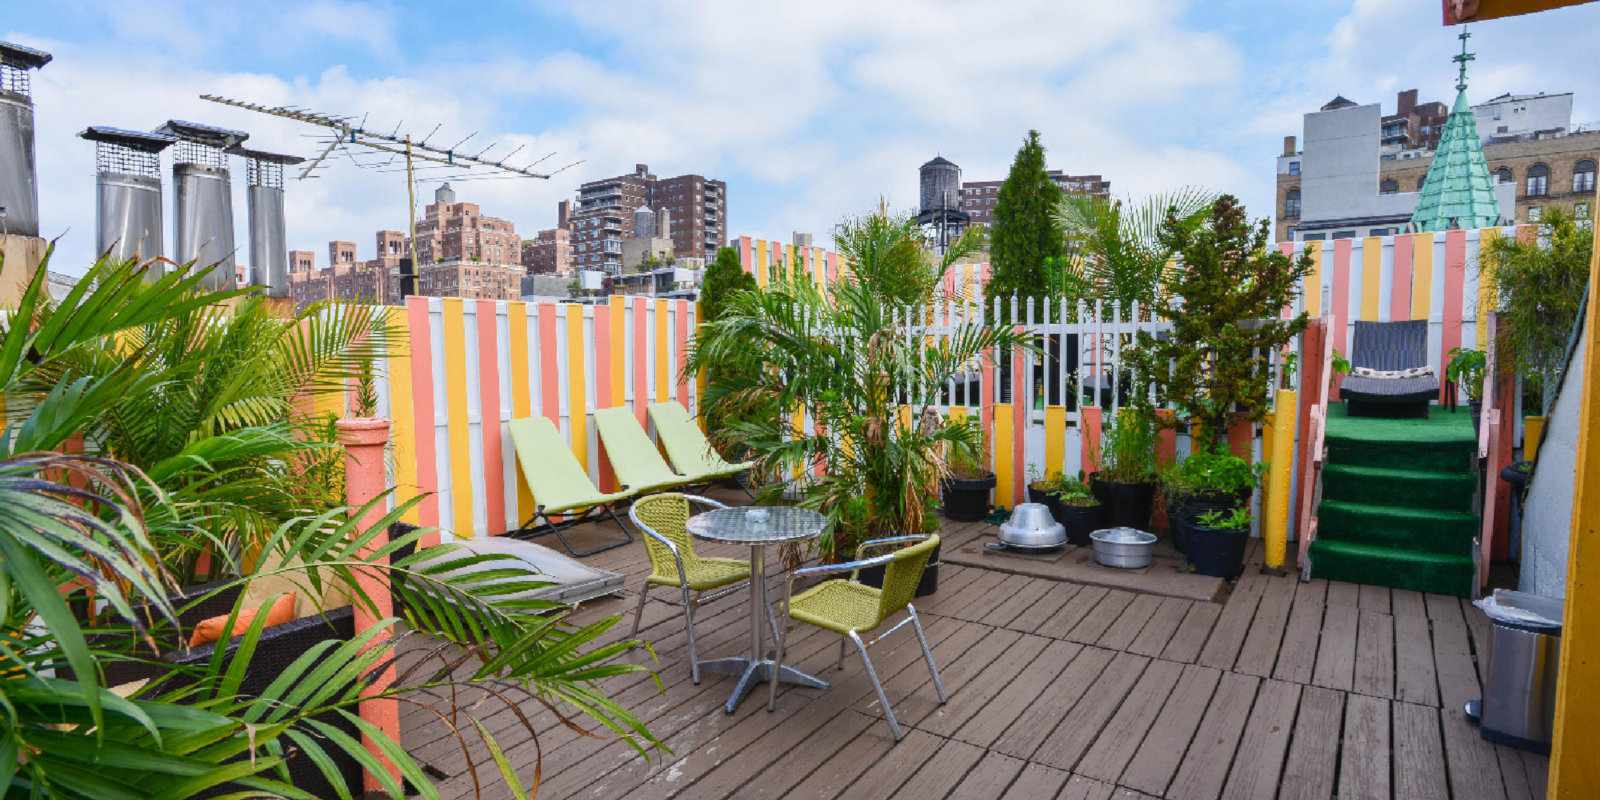 Gay Pride New York - the Colonial House Inn is an affordable accommodation option in Chelsea with a lovely rooftop terrace.